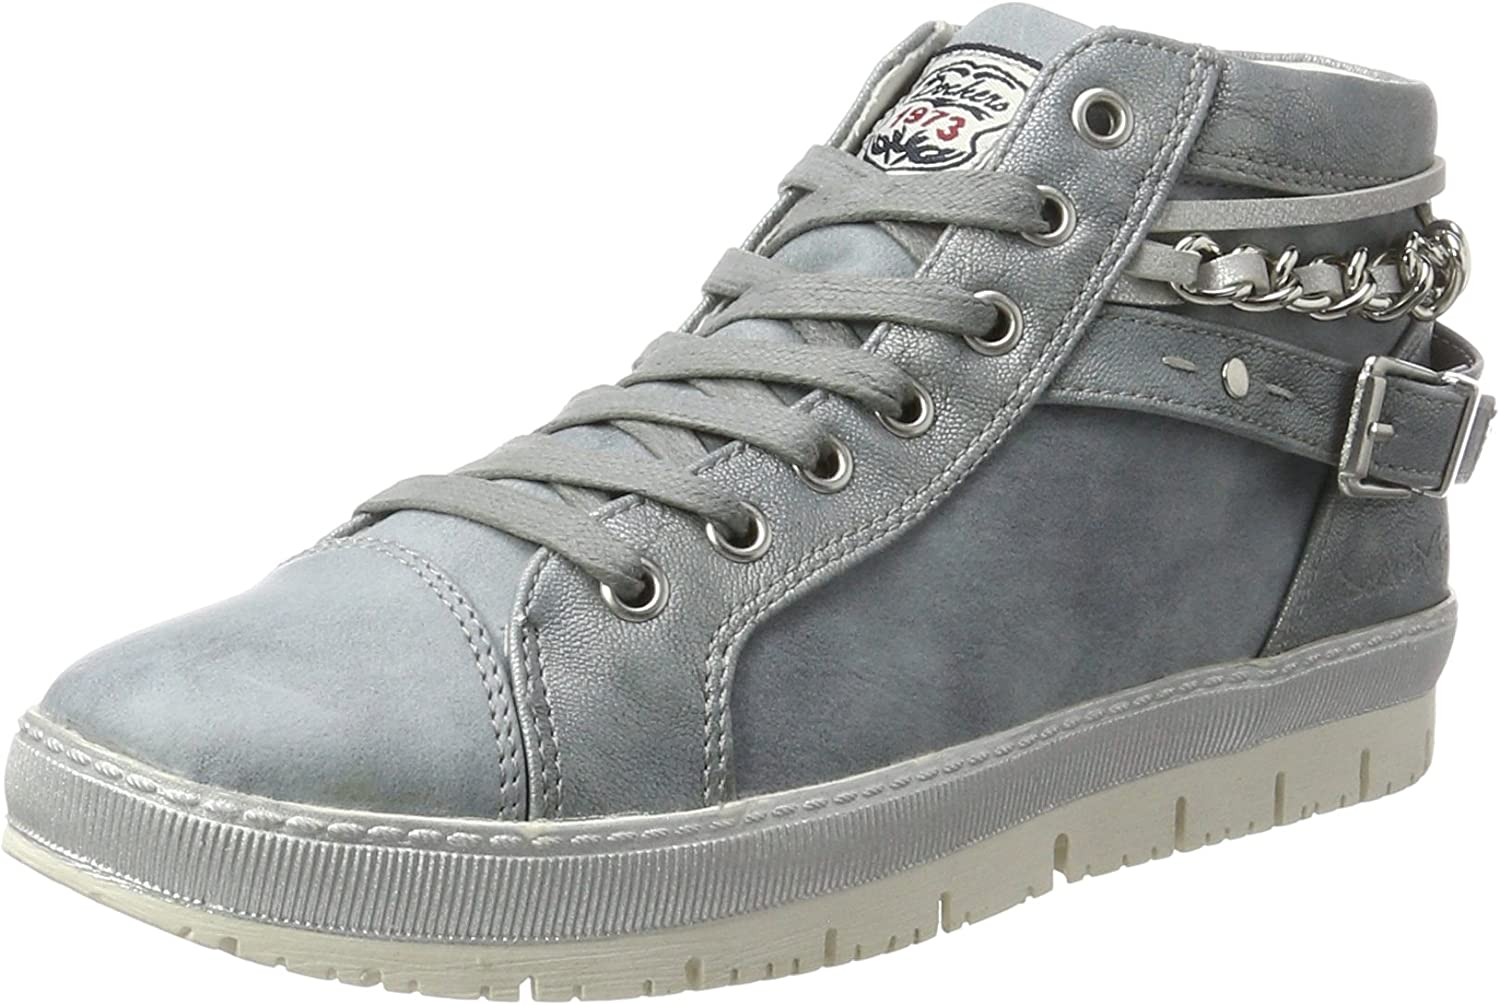 Dockers by Gerli Women's 35ne212-636610 Hi-Top Sneakers